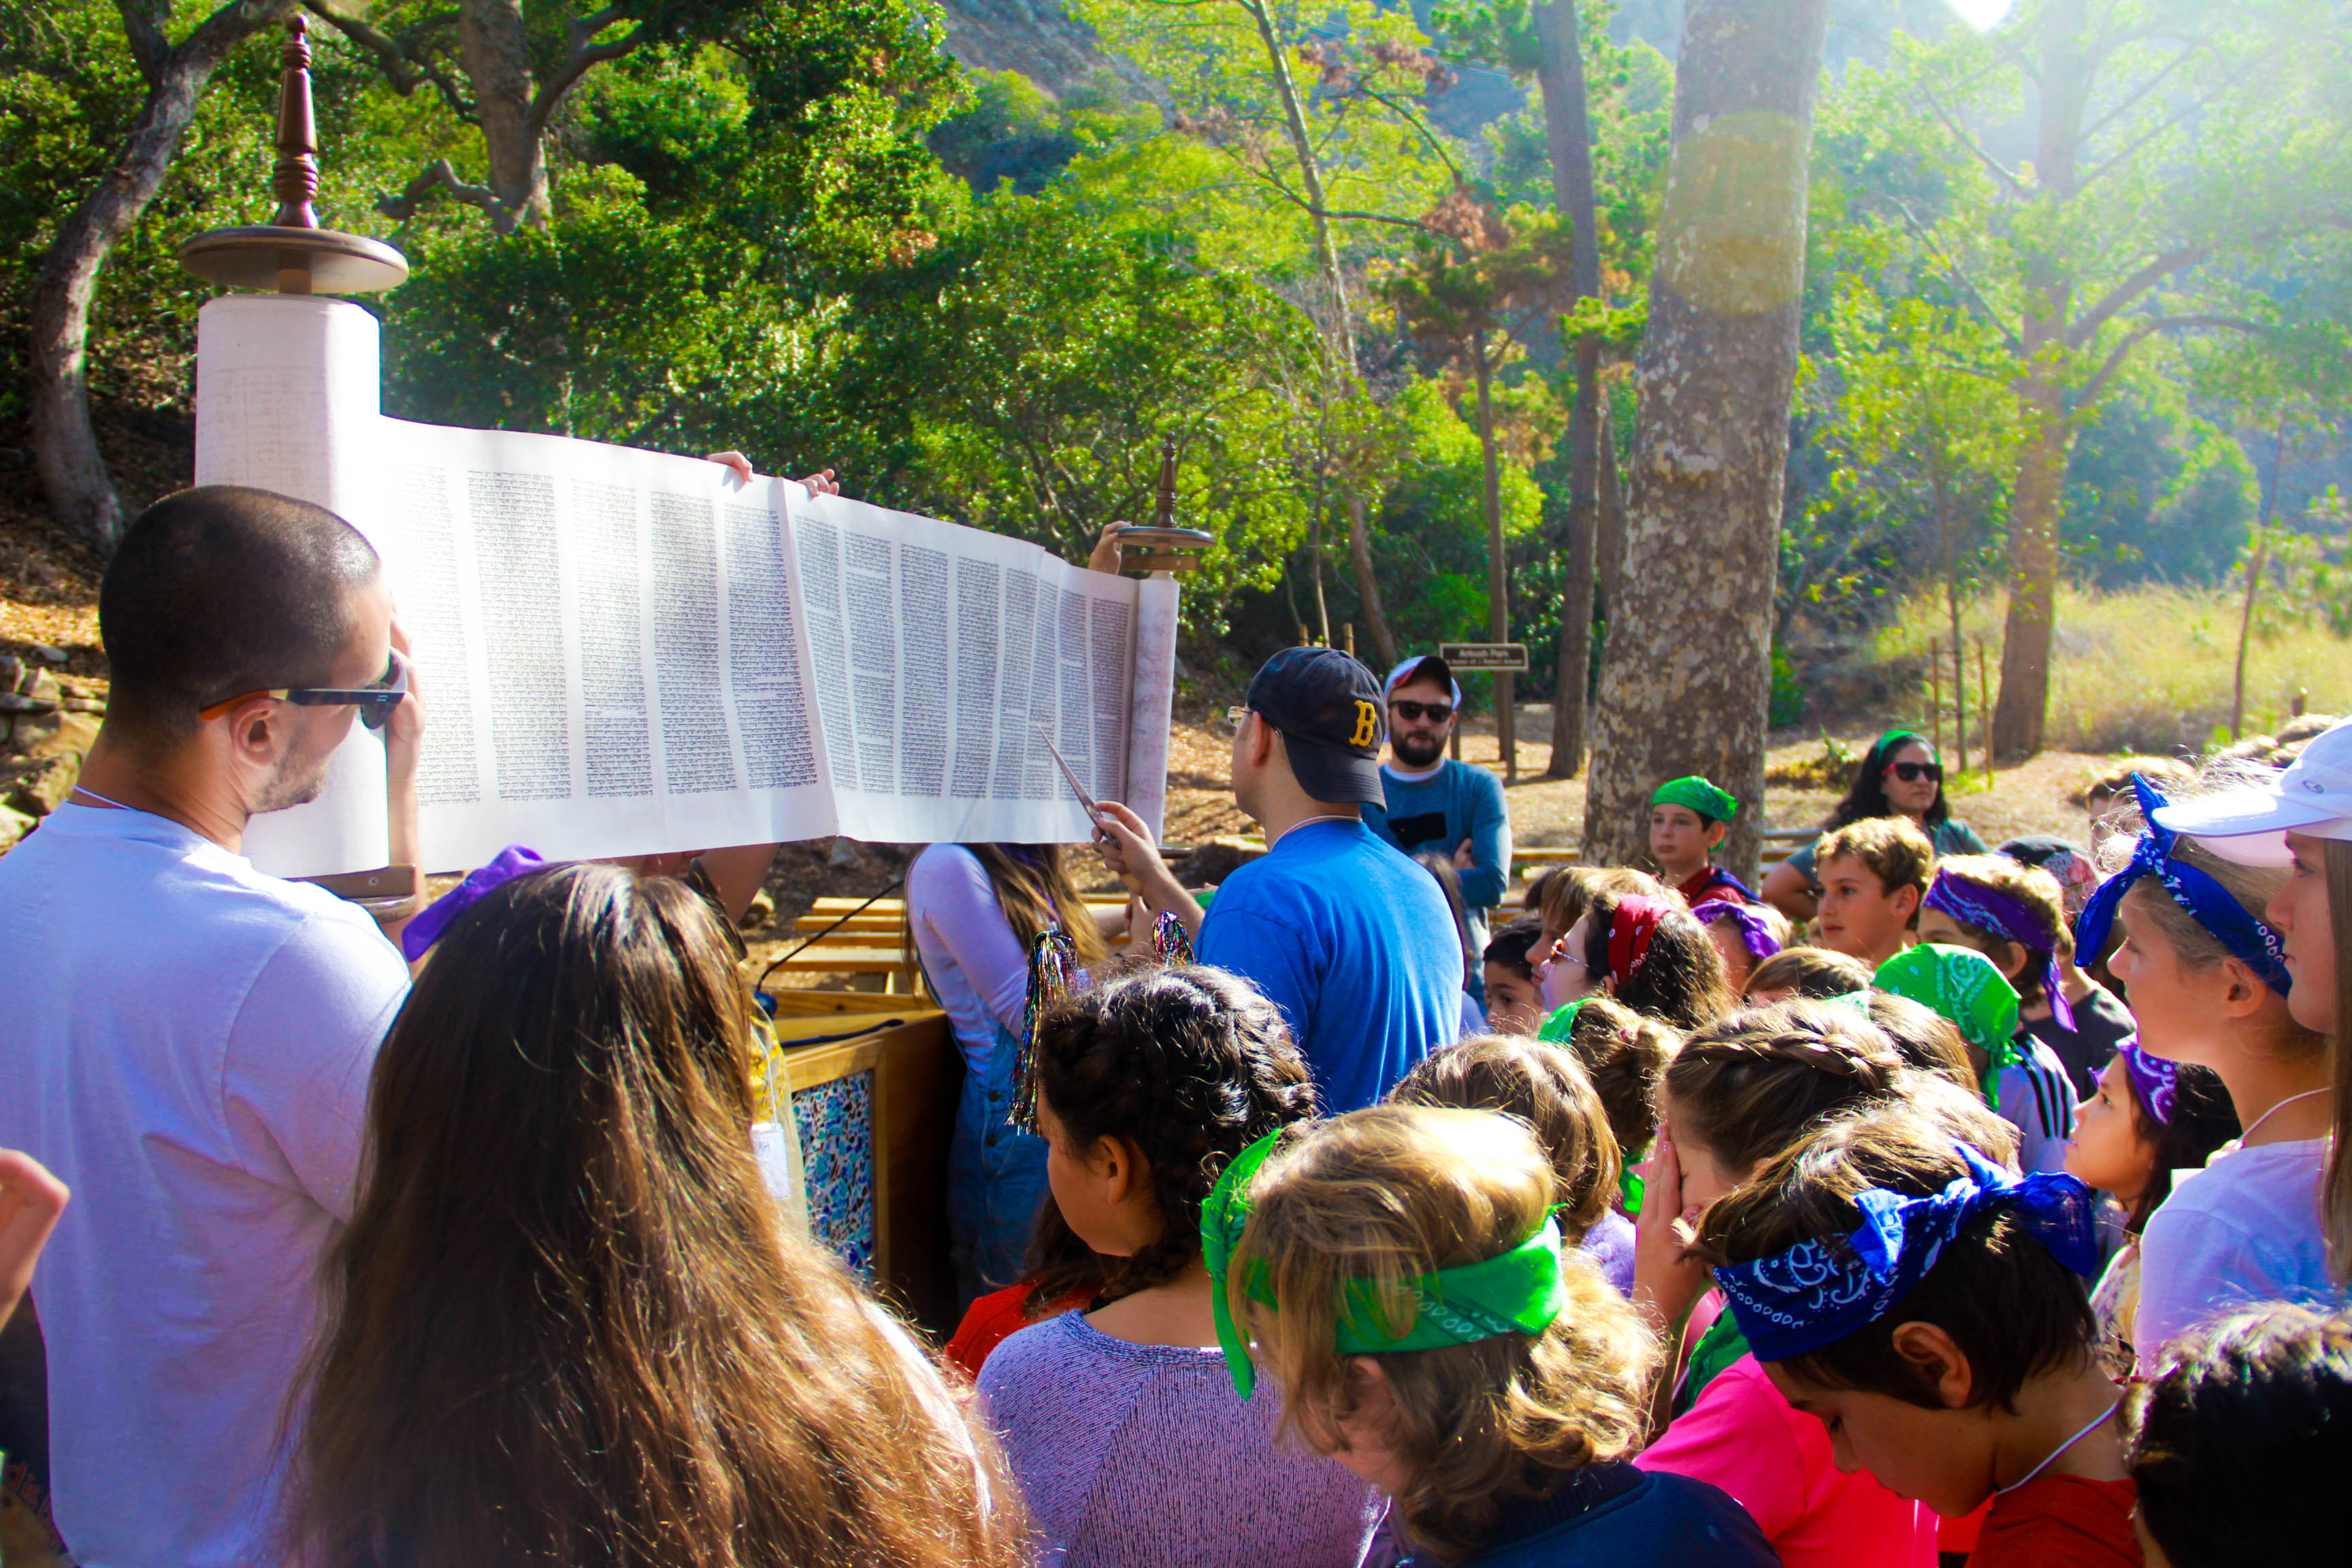 religious school retreat at camp with torah